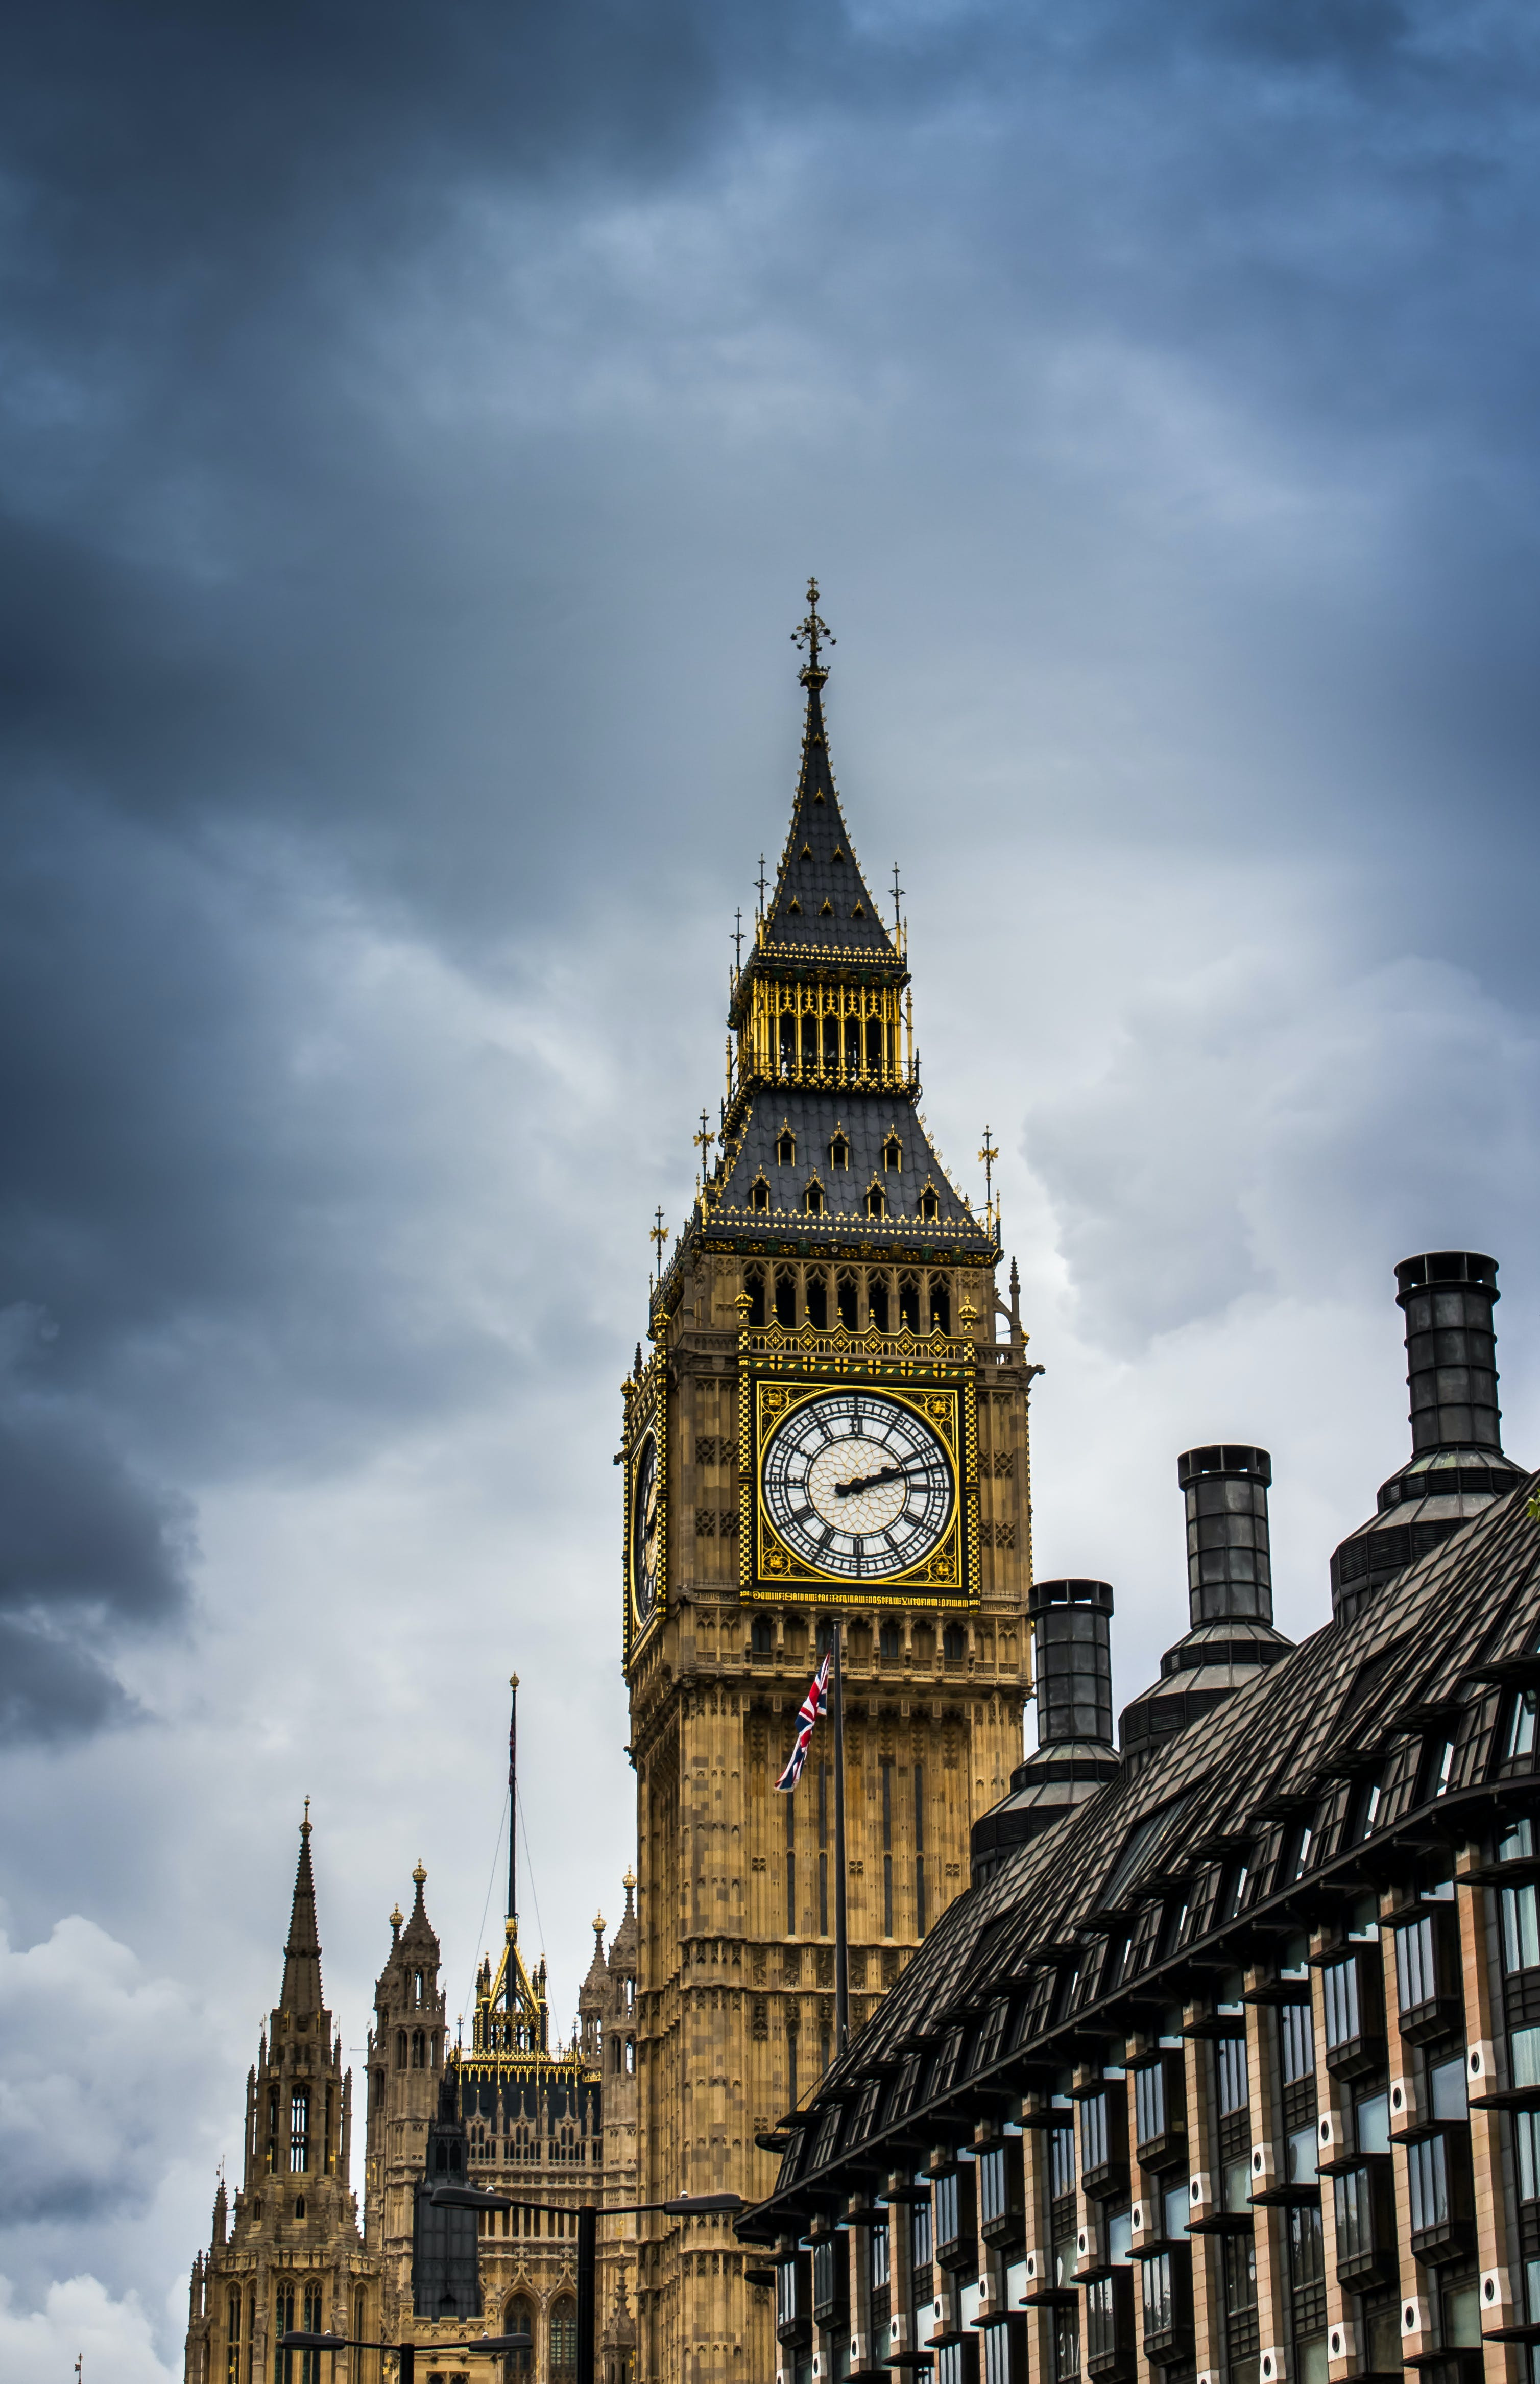 Big Ben Low-angle Photography